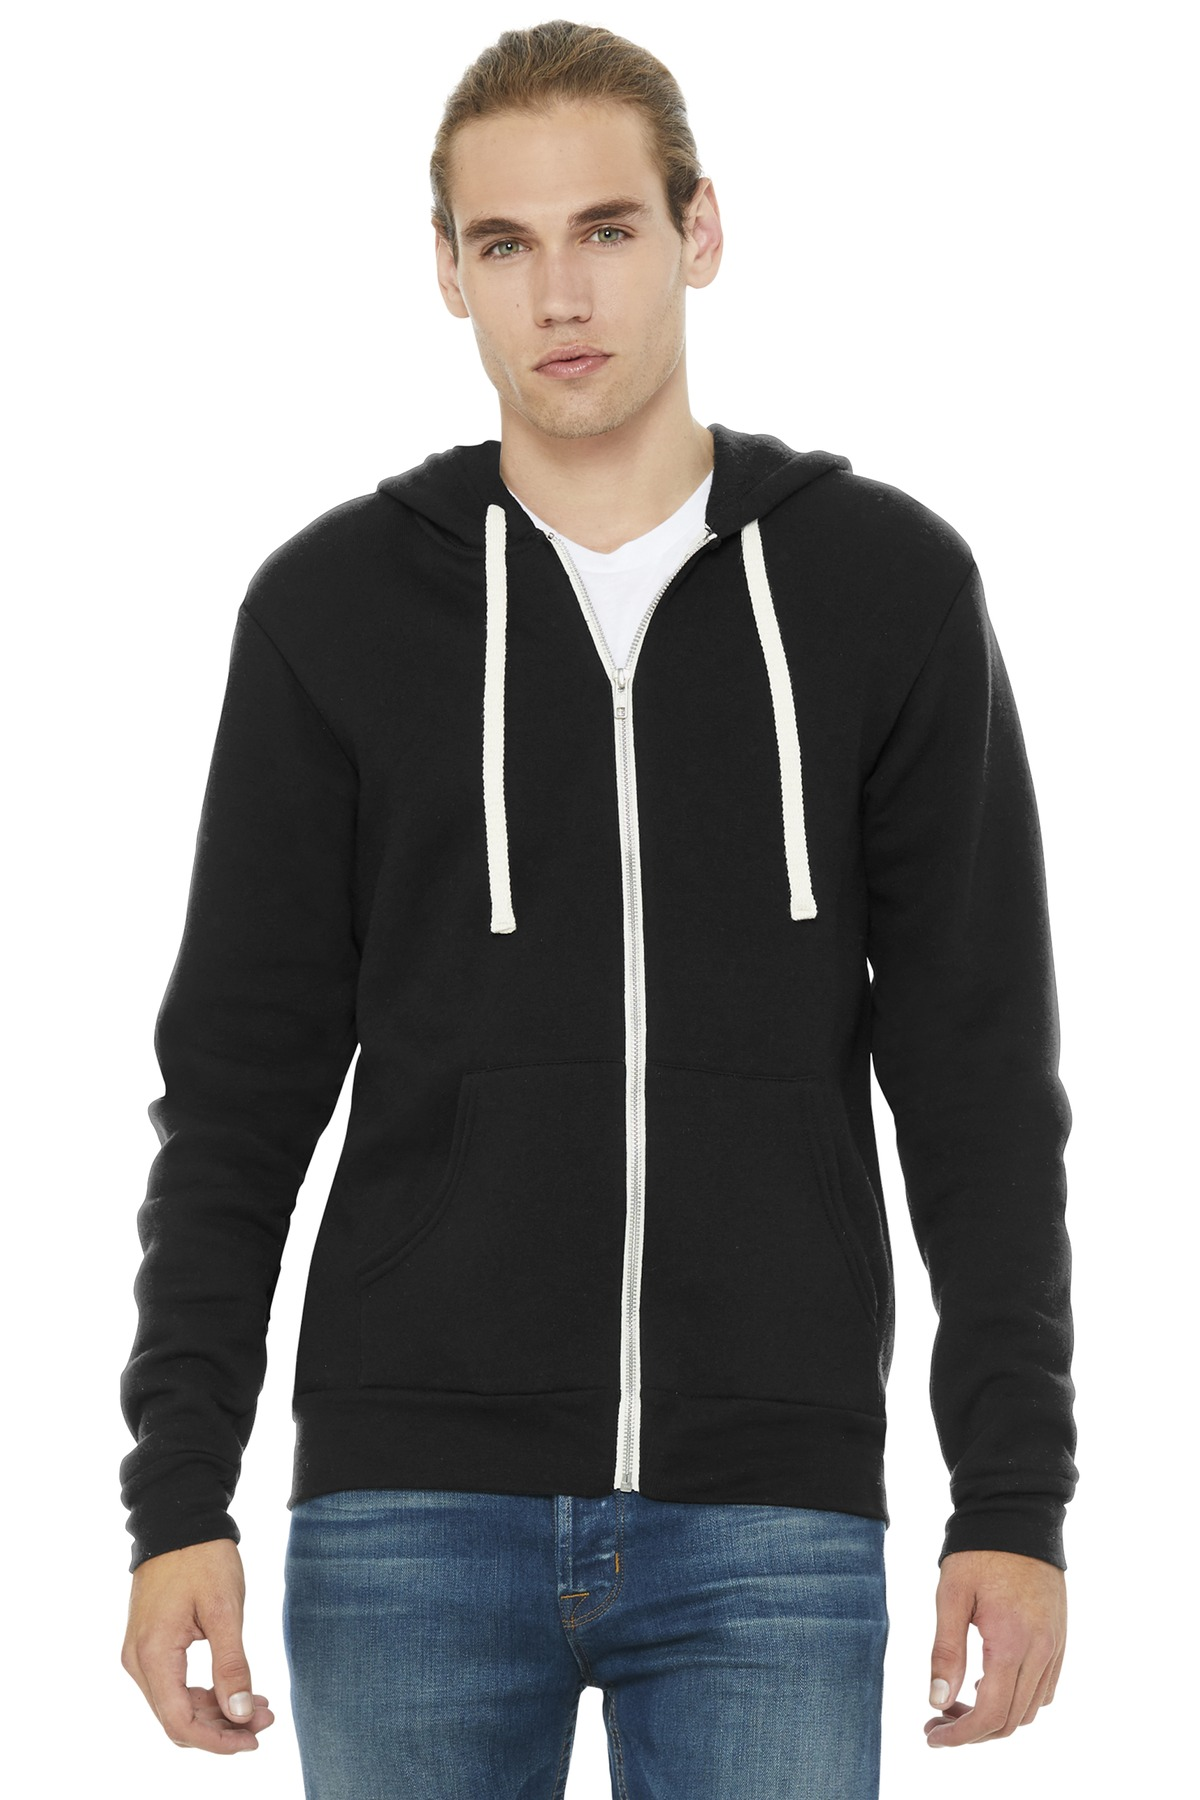 BELLA+CANVAS Unisex Triblend Sponge Fleece Full-Zip Hoodie. BC3909